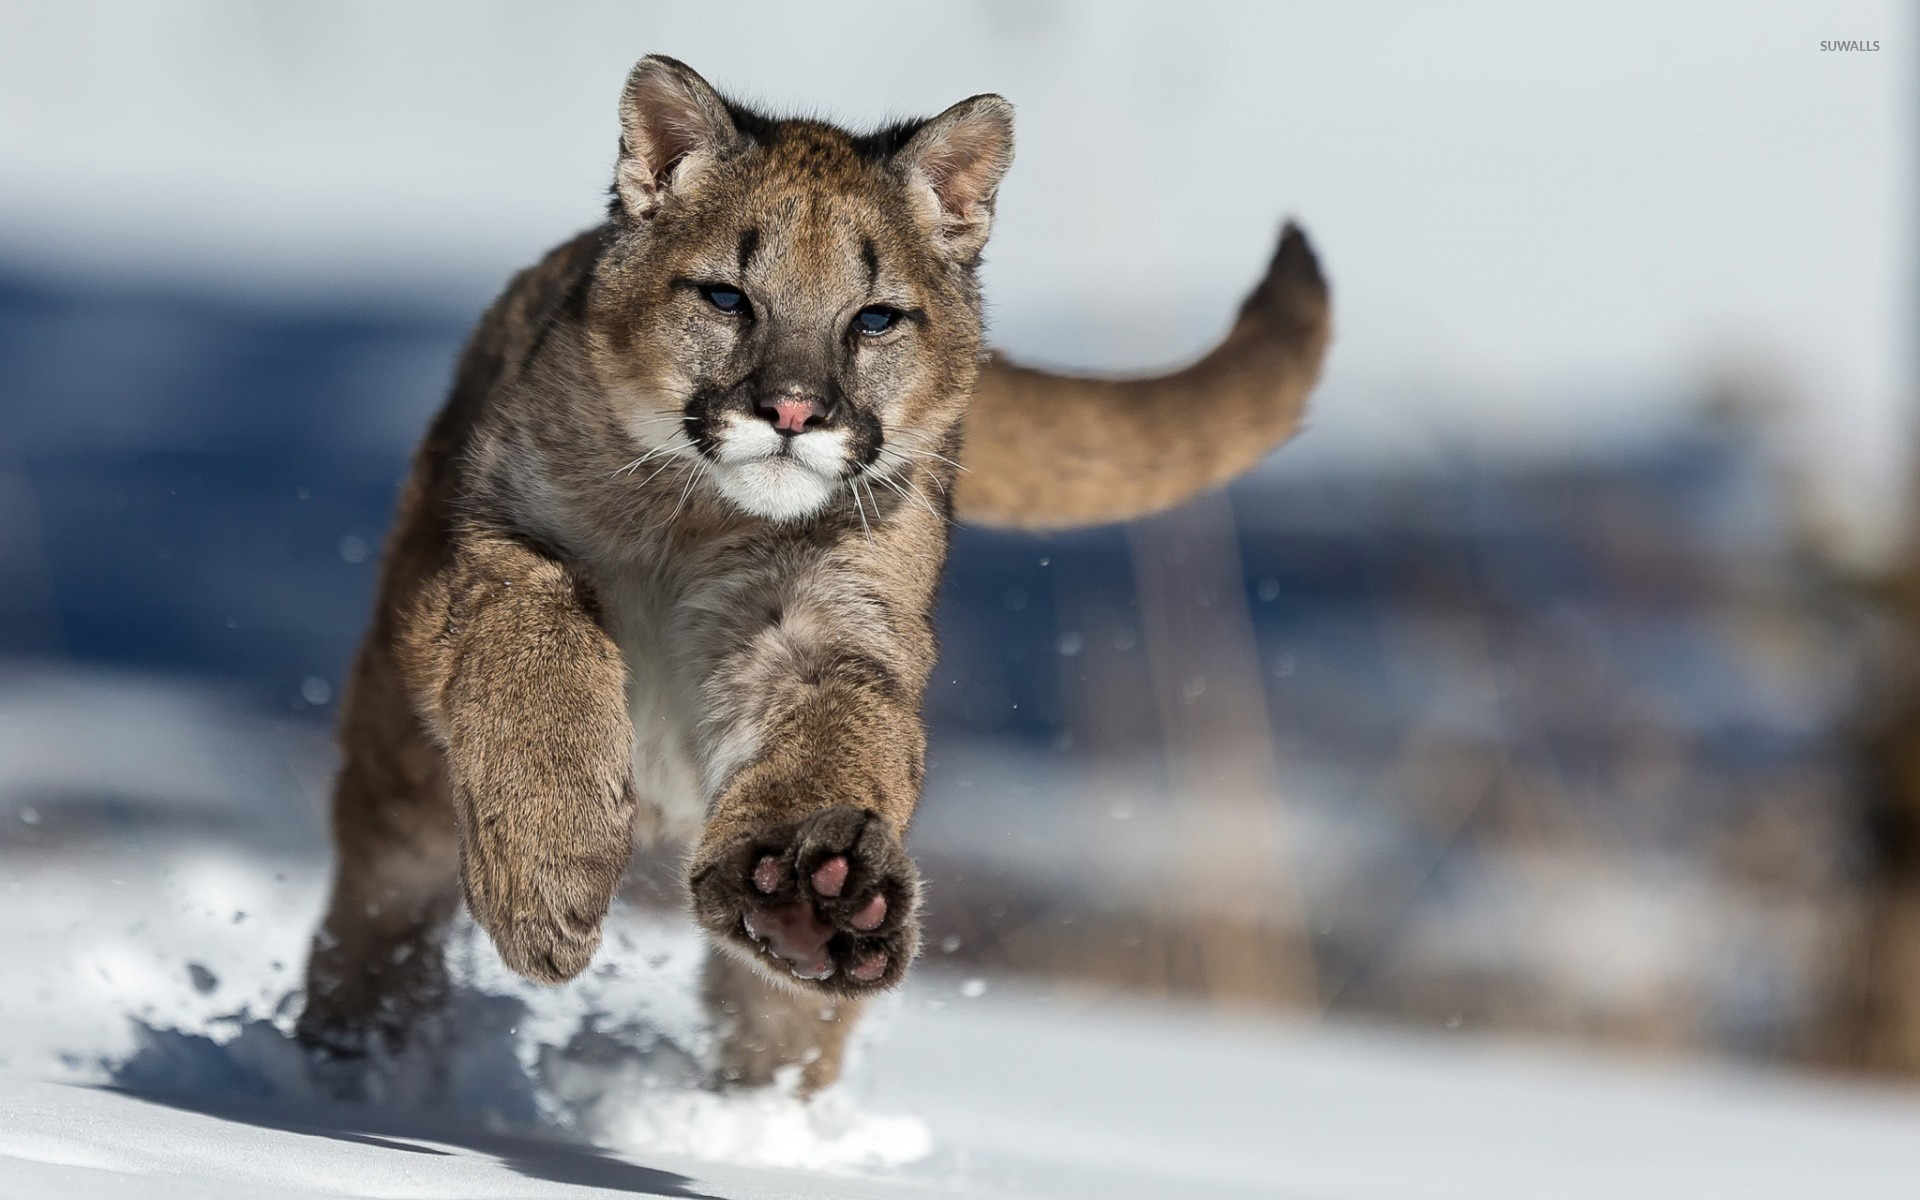 cougar running in the snow wallpaper - animal wallpapers - #45665